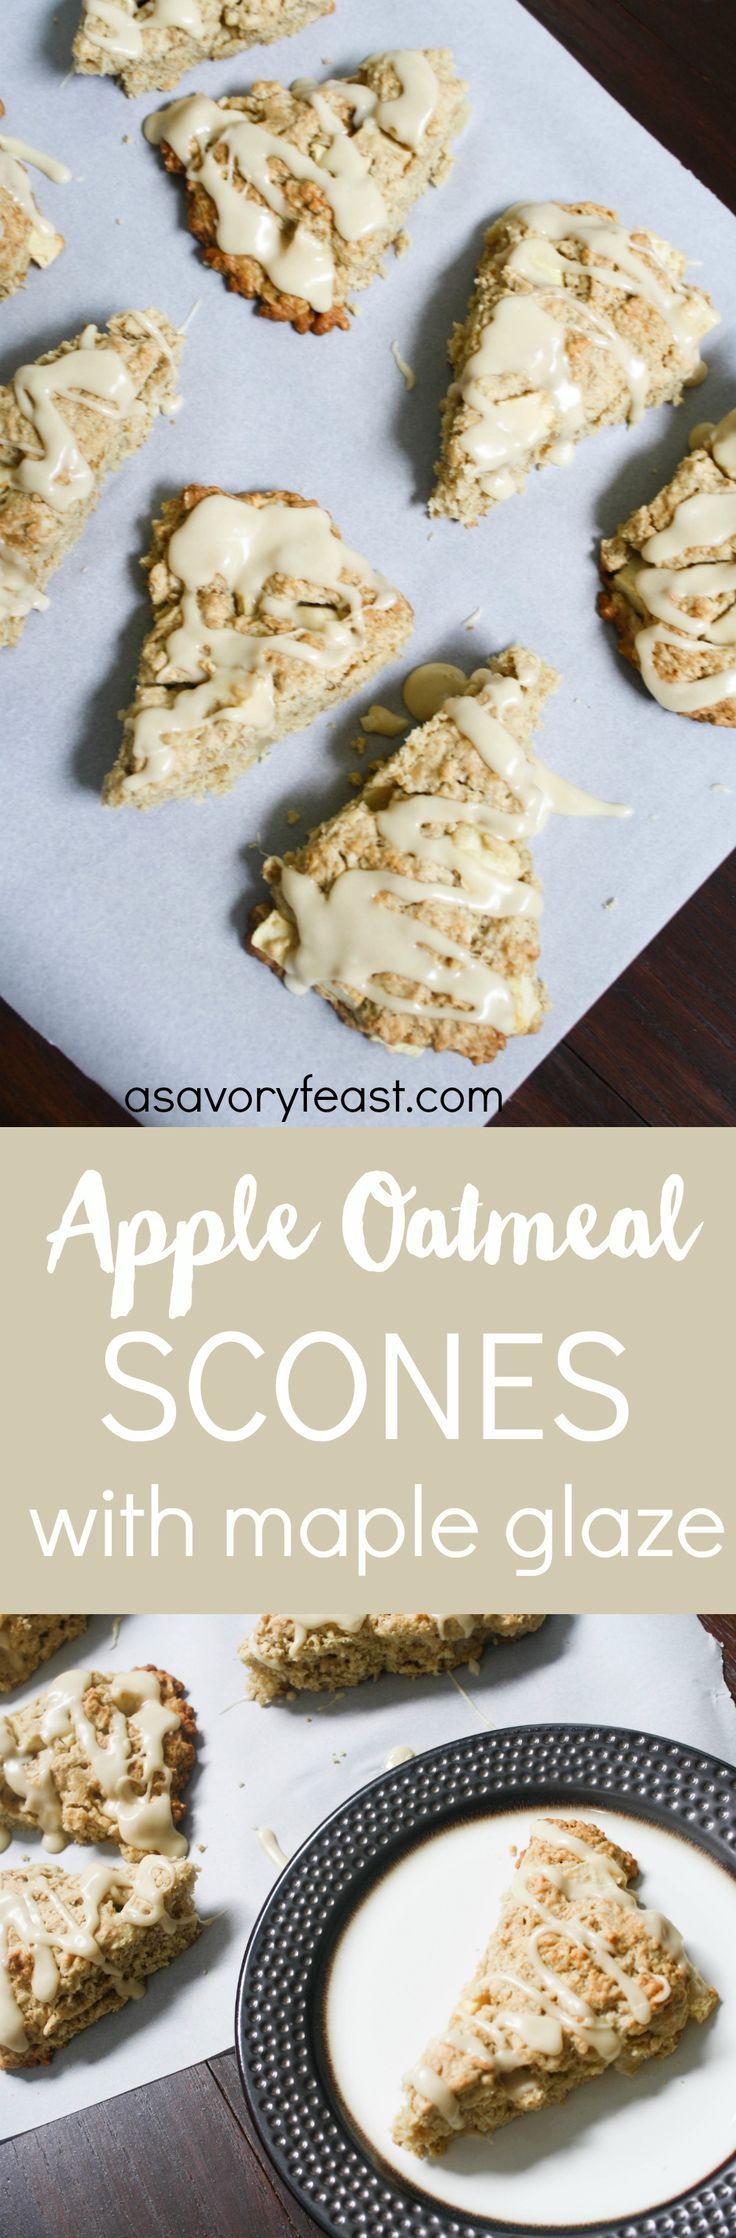 Apple Oatmeal Scones with Maple Glaze // Fall means hot cups of coffee ...